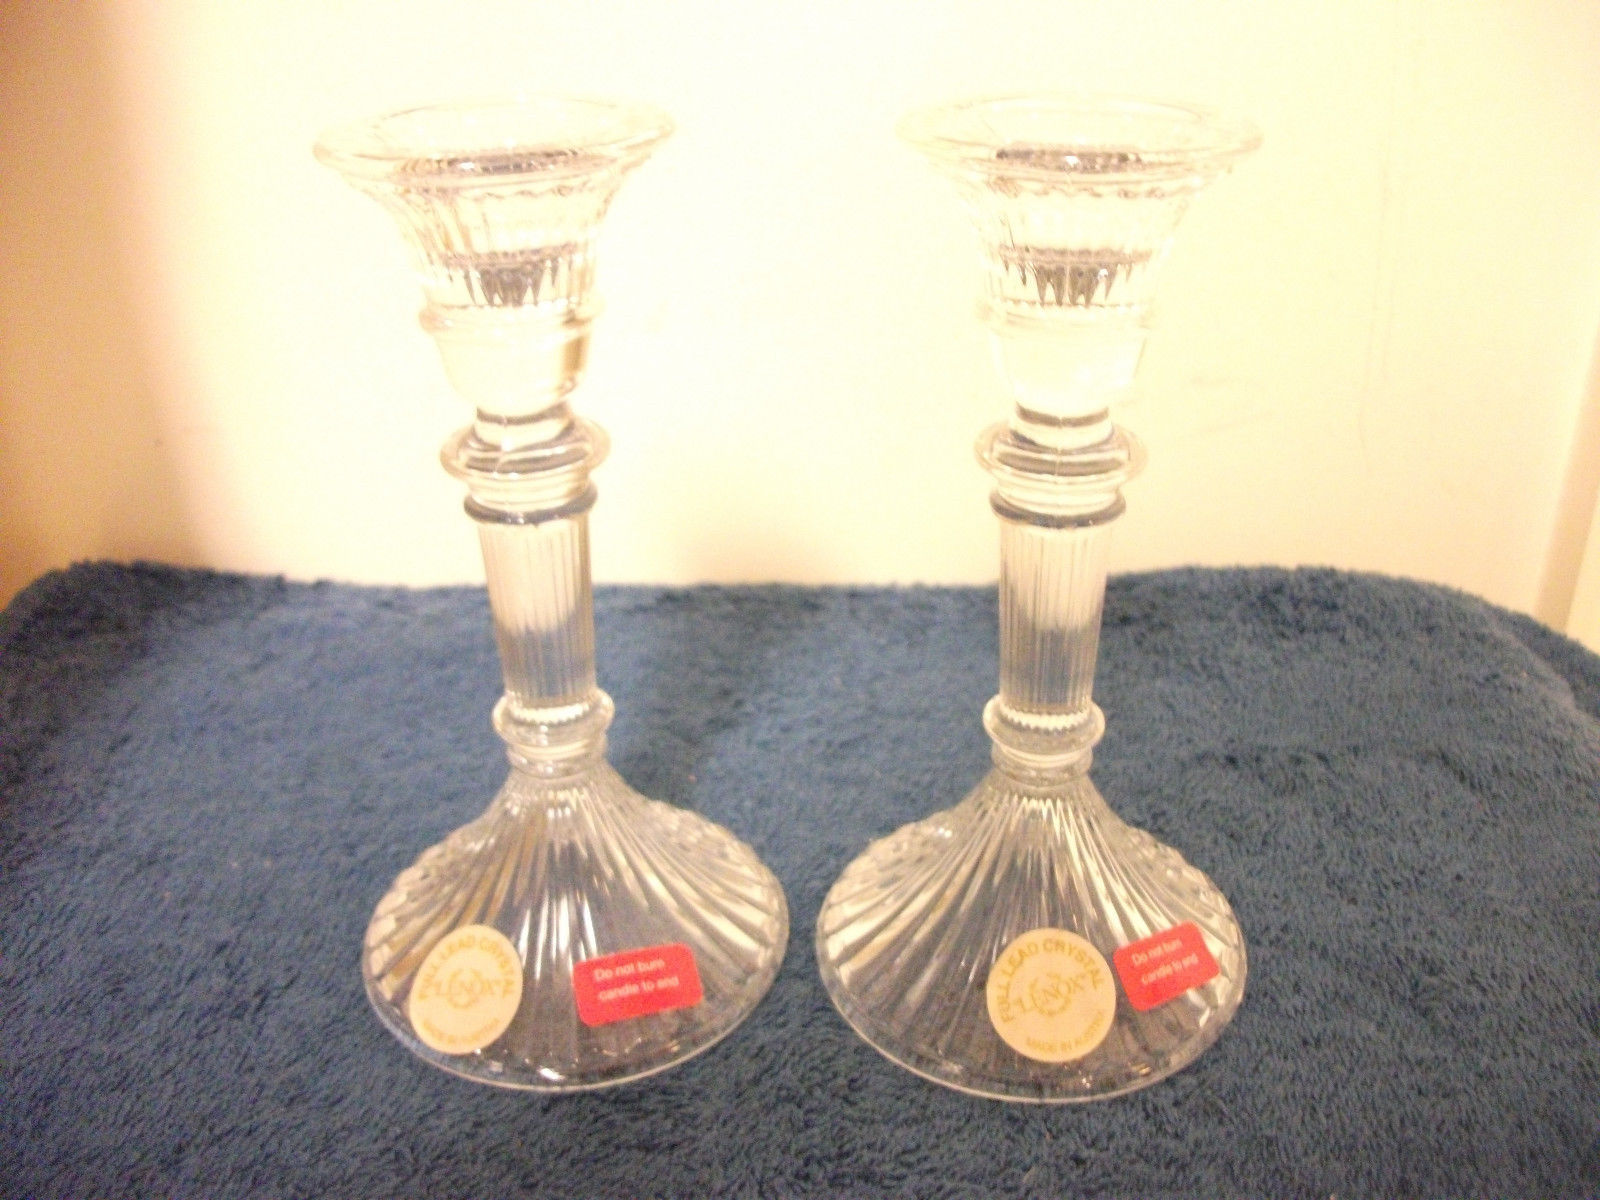 Primary image for LENOX CRYSTAL GLASS CANDLESTICK CANDLE STICK HOLDERS NEW